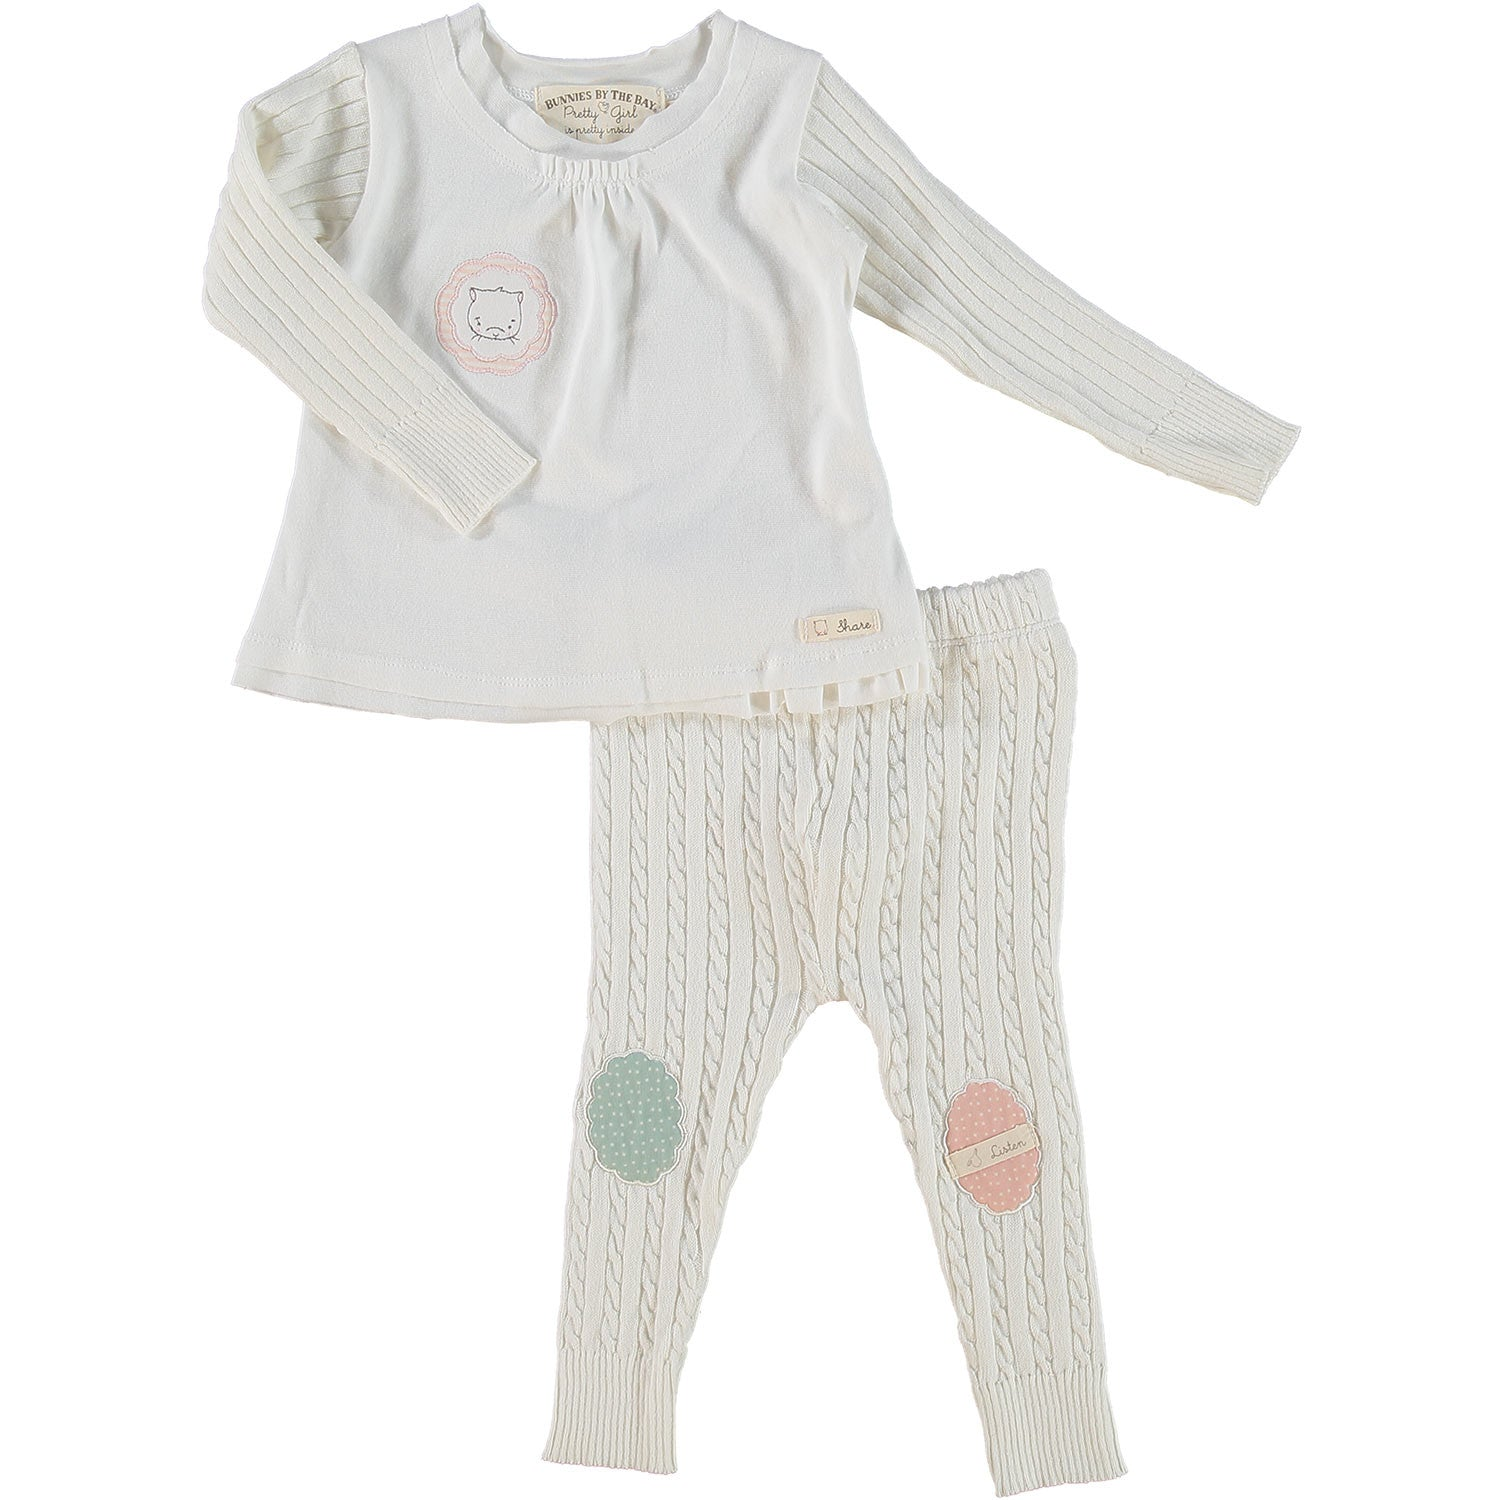 Whipped Cream Top and Leggings Set 9-12 months